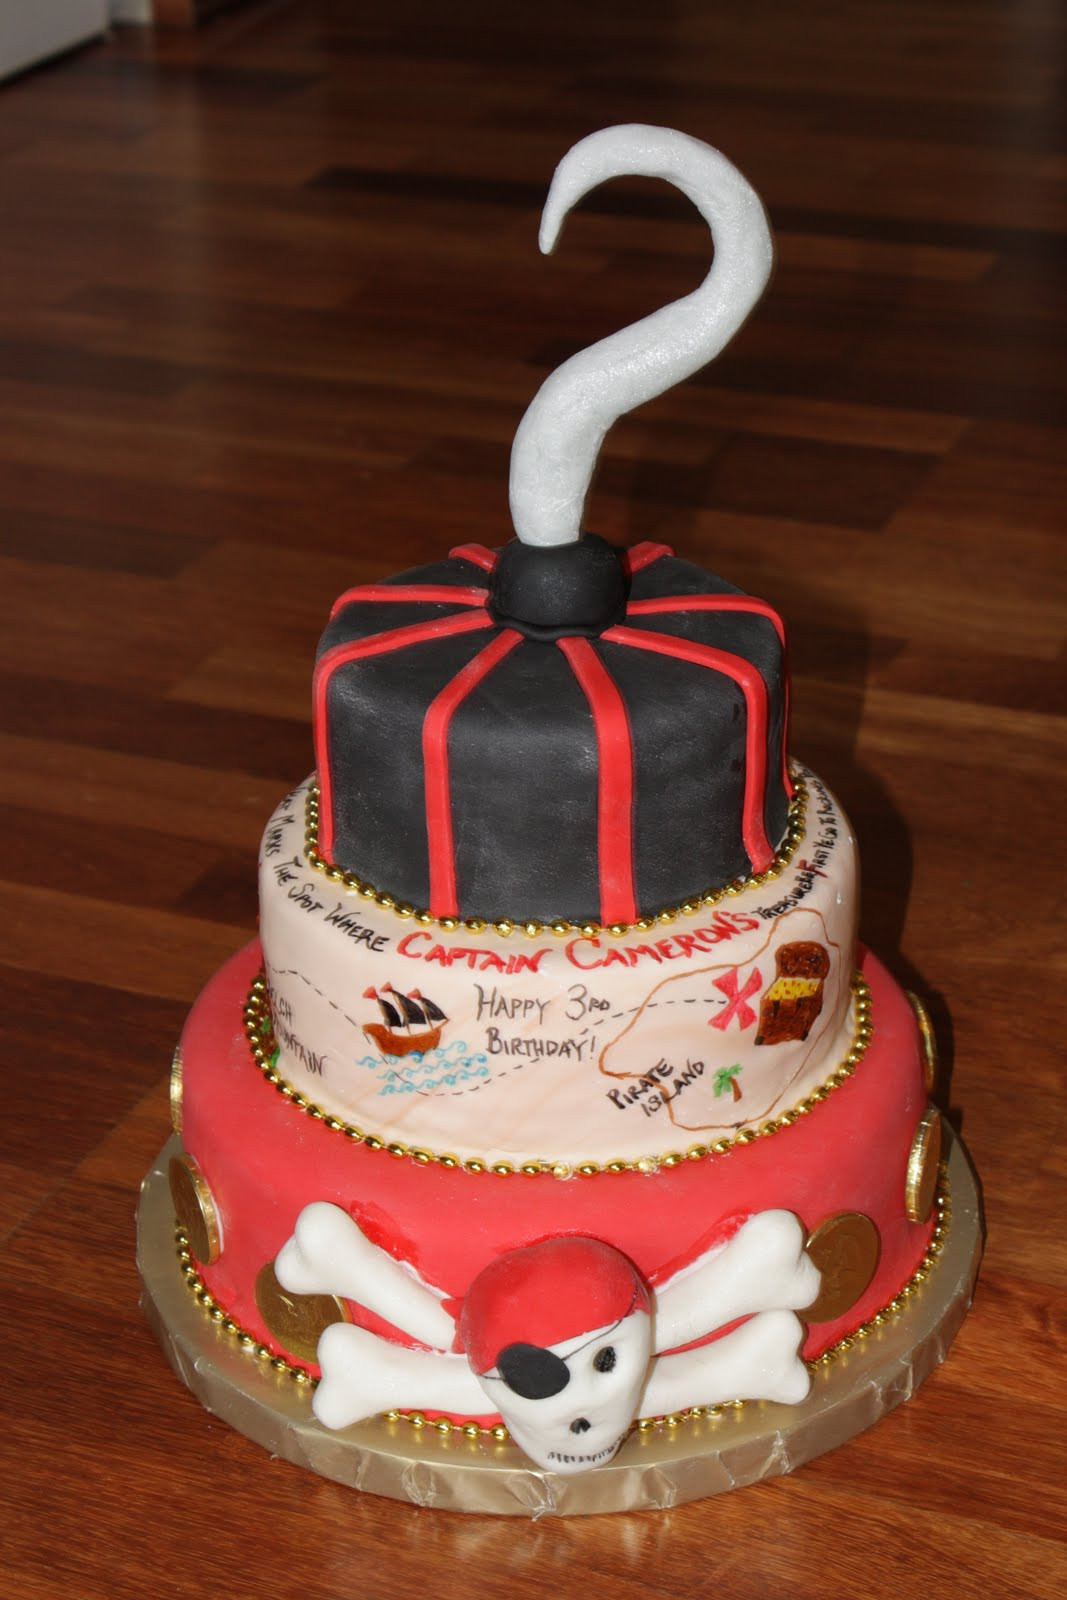 Best ideas about Cake Birthday . Save or Pin Custom Cakes By Britt Pirate Birthday Cake Now.